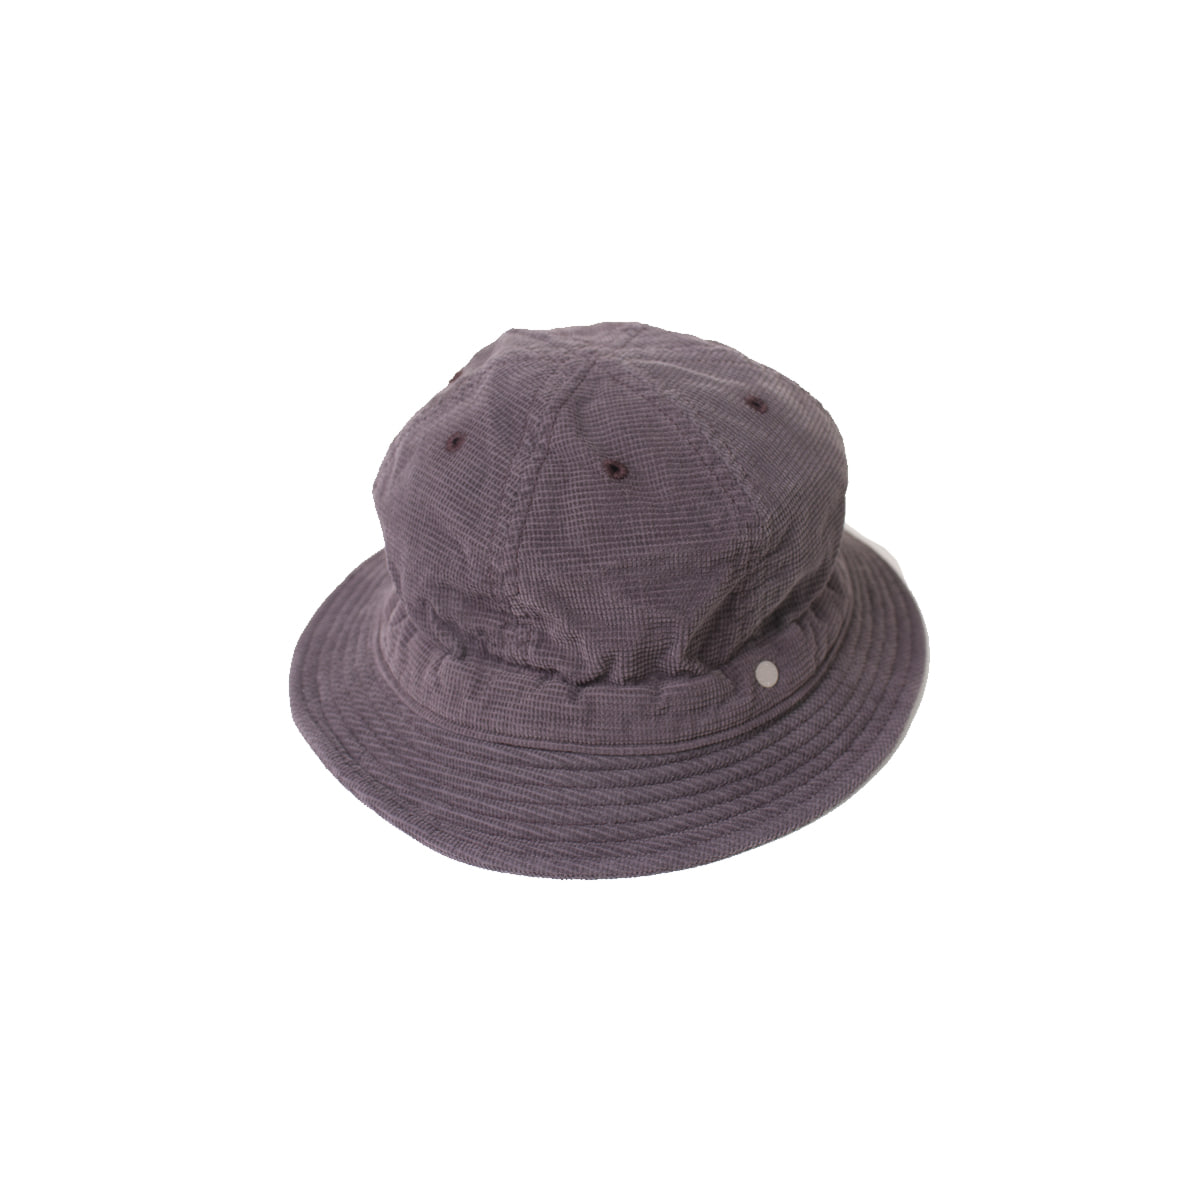 [DECHO] SHALLOW KOME HAT(CORDUROY) 'BROWN'